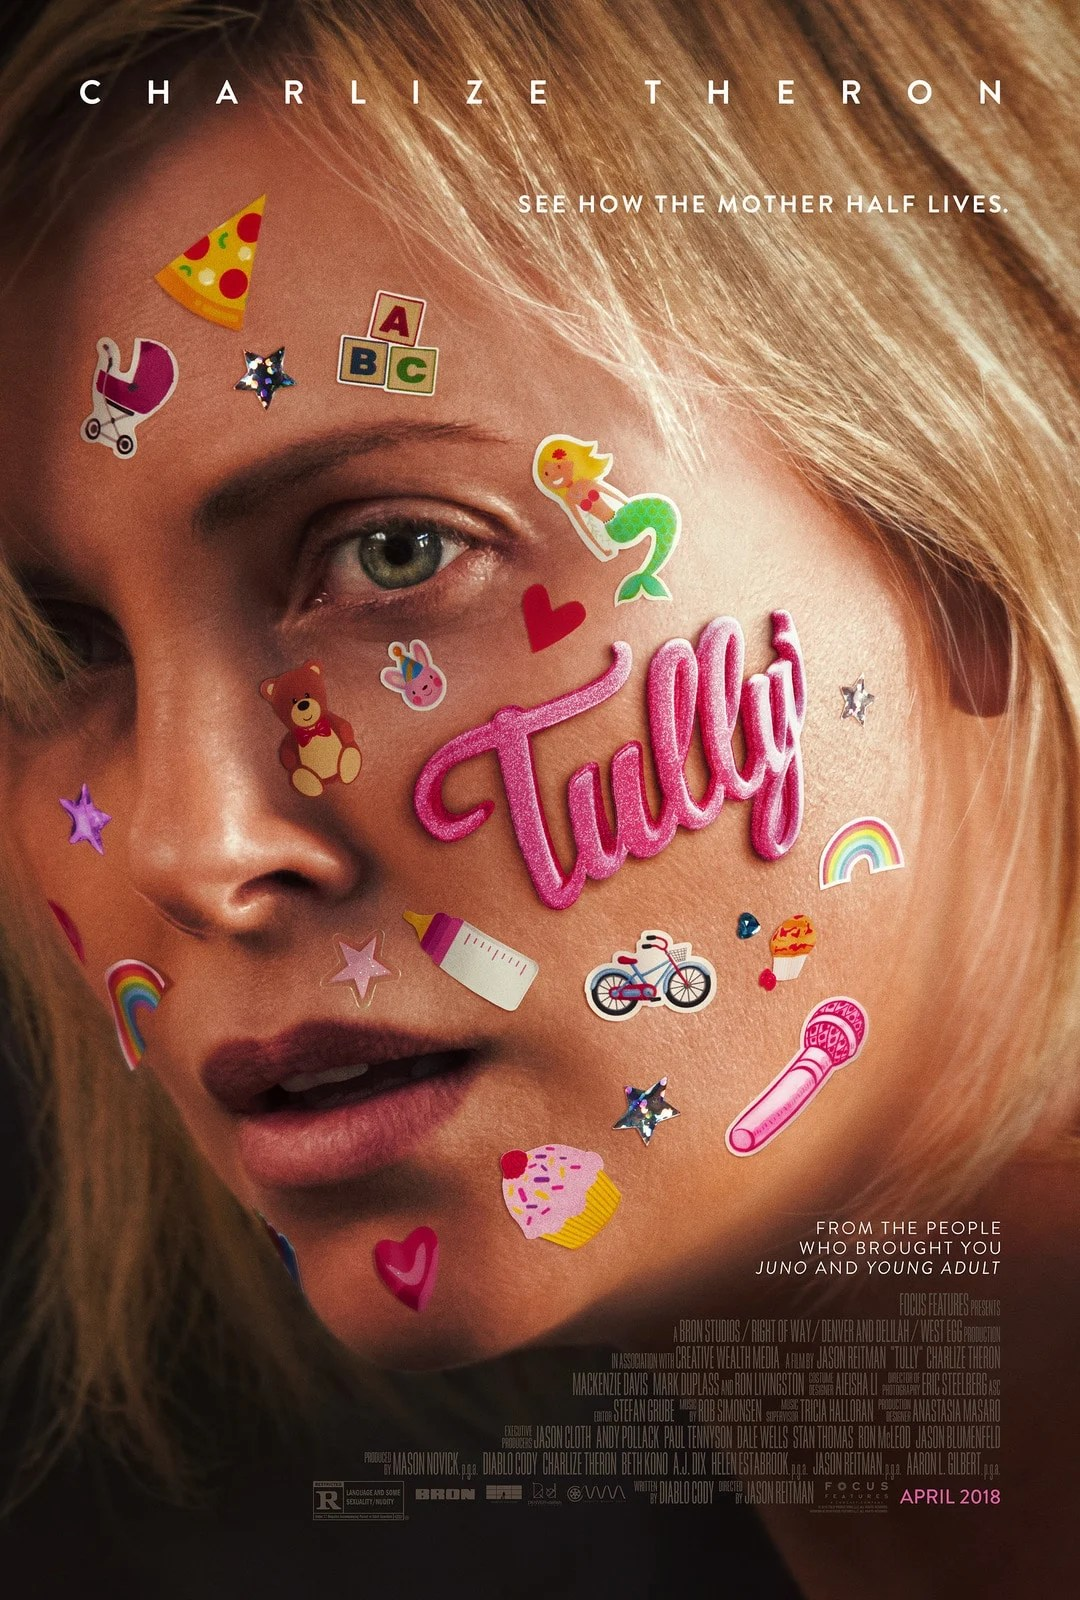 The Tully Movie poster hitting theaters everywhere May 4th, 2018. A mother of three including a newborn, is gifted a night nanny by her brother. Hesitant to the extravagance at first, Marlo comes to form a unique bond a young nanny named Tully.